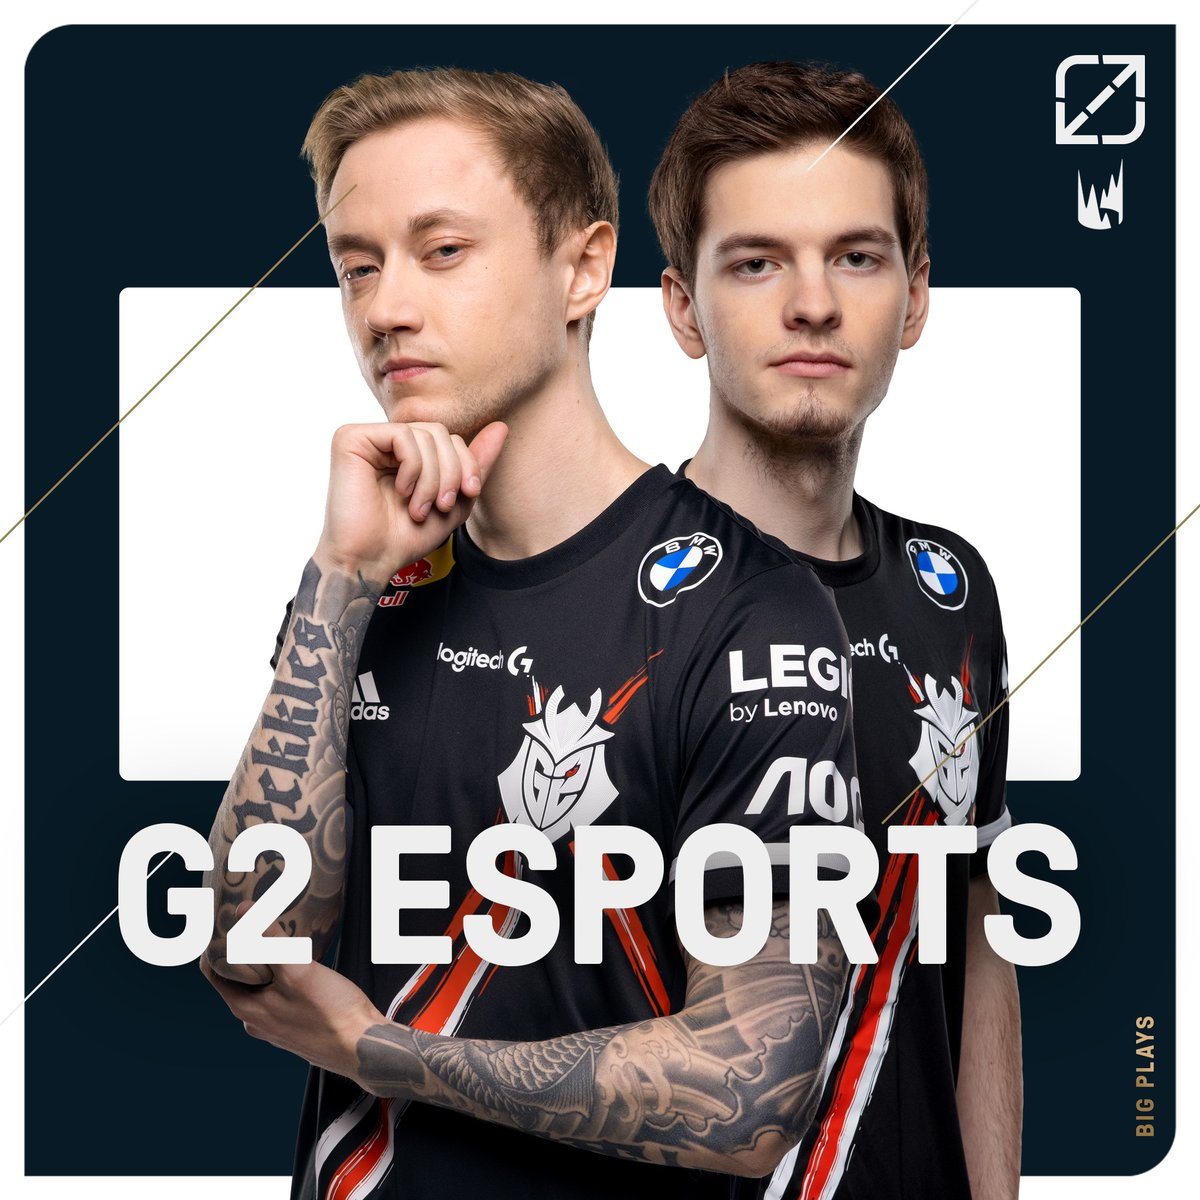 The 300IQ @G2esports Senna-Sion Bot Lane Combo in all its beauty: https://t.co/0g2tLPJKjN